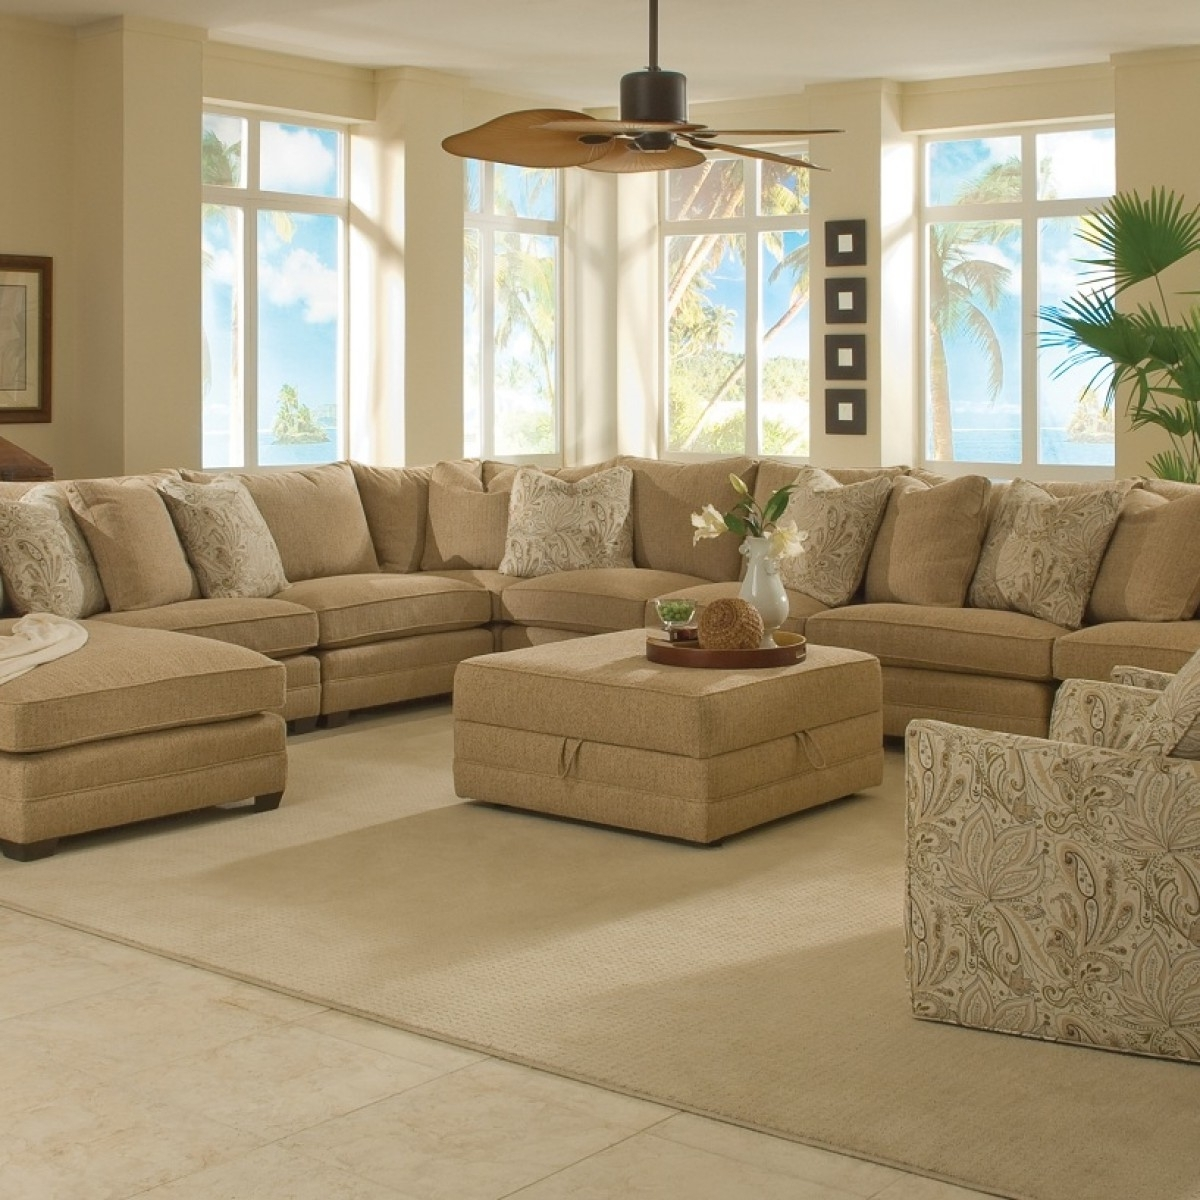 Large Sectional Sofas Pertaining To Most Recently Released Factors To Consider Before Buying An Extra Large Sectional Sofa (View 8 of 20)